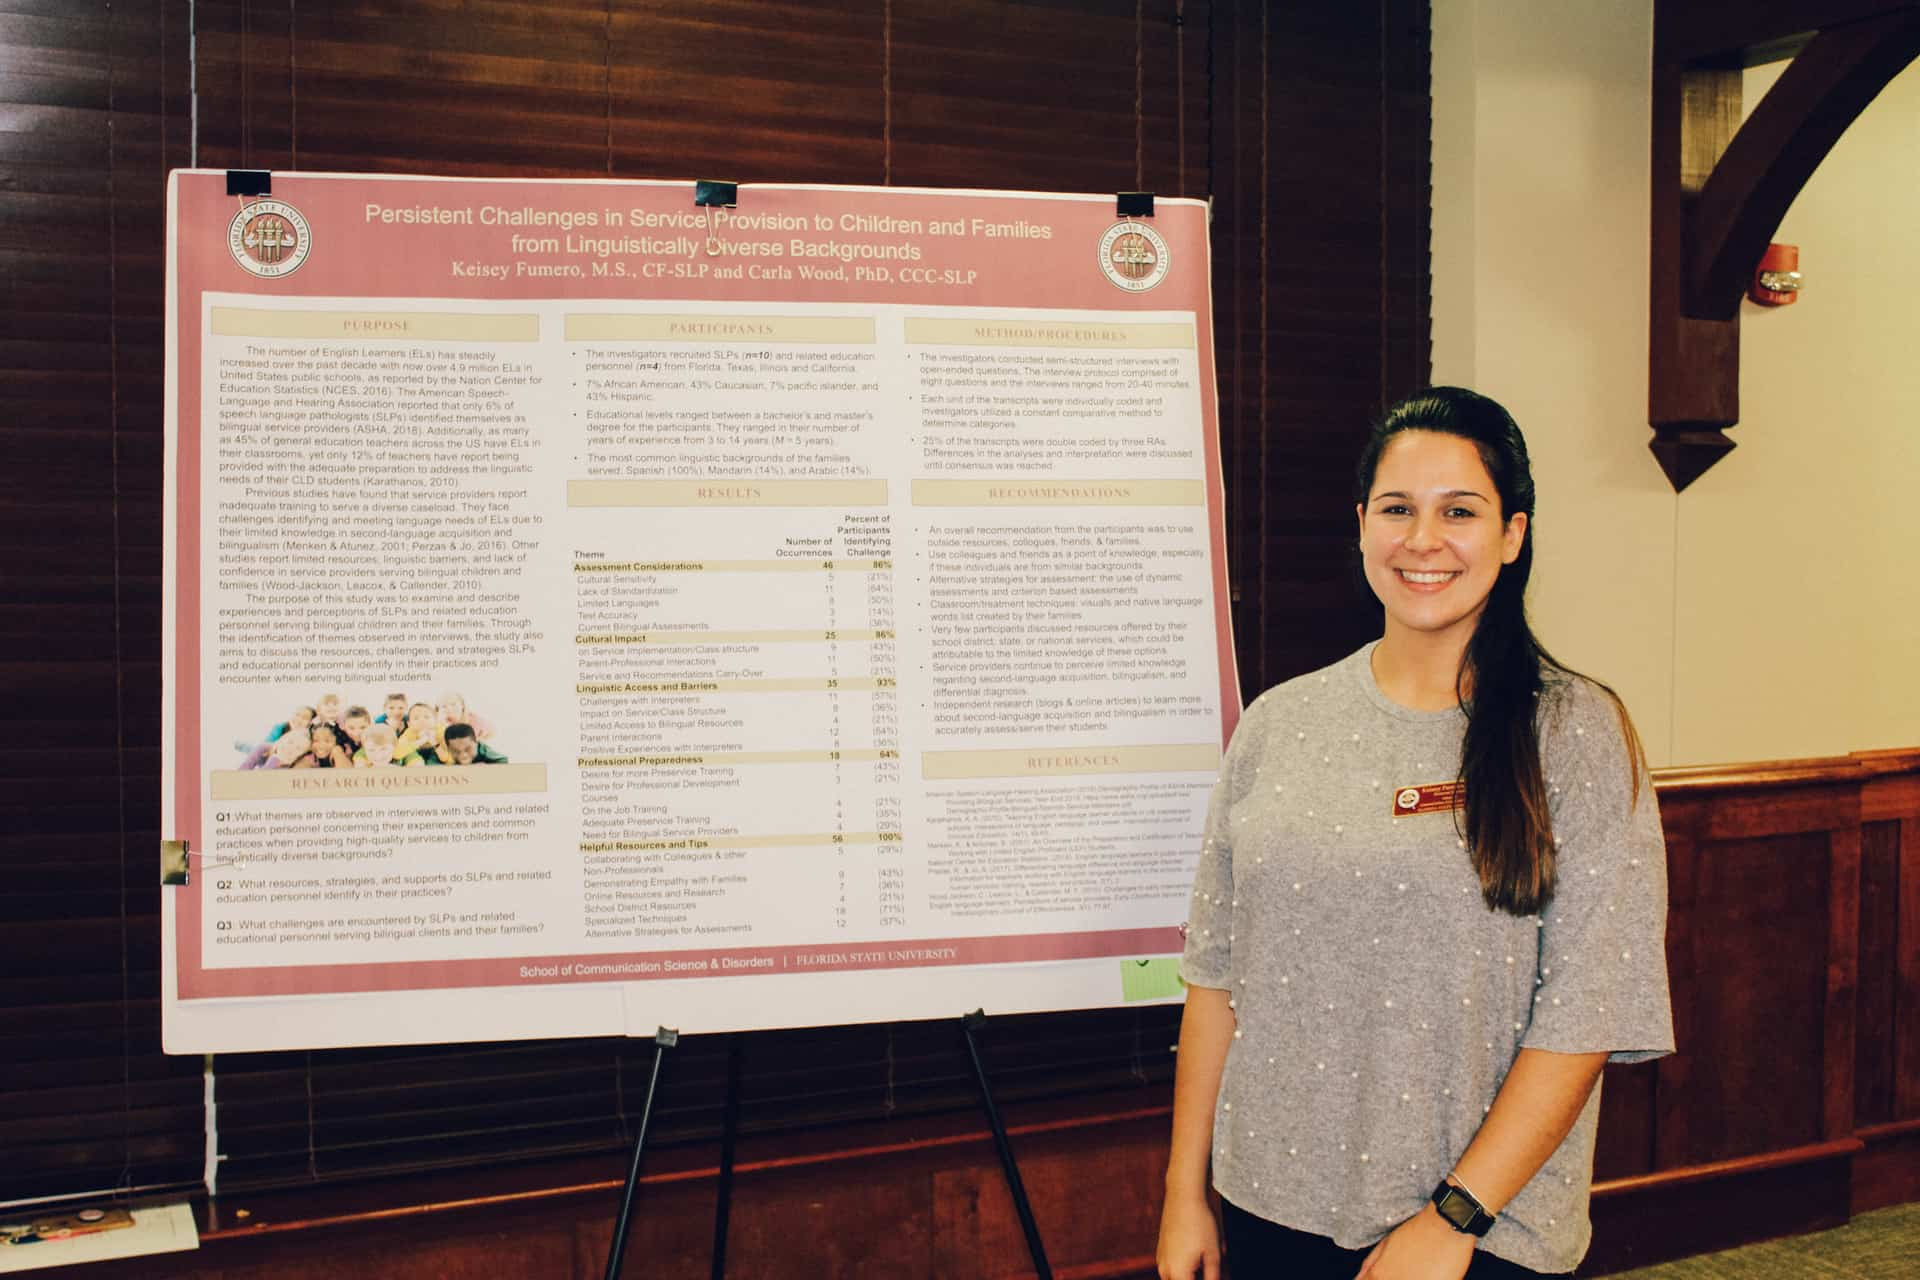 Keisey Fumero with her research poster